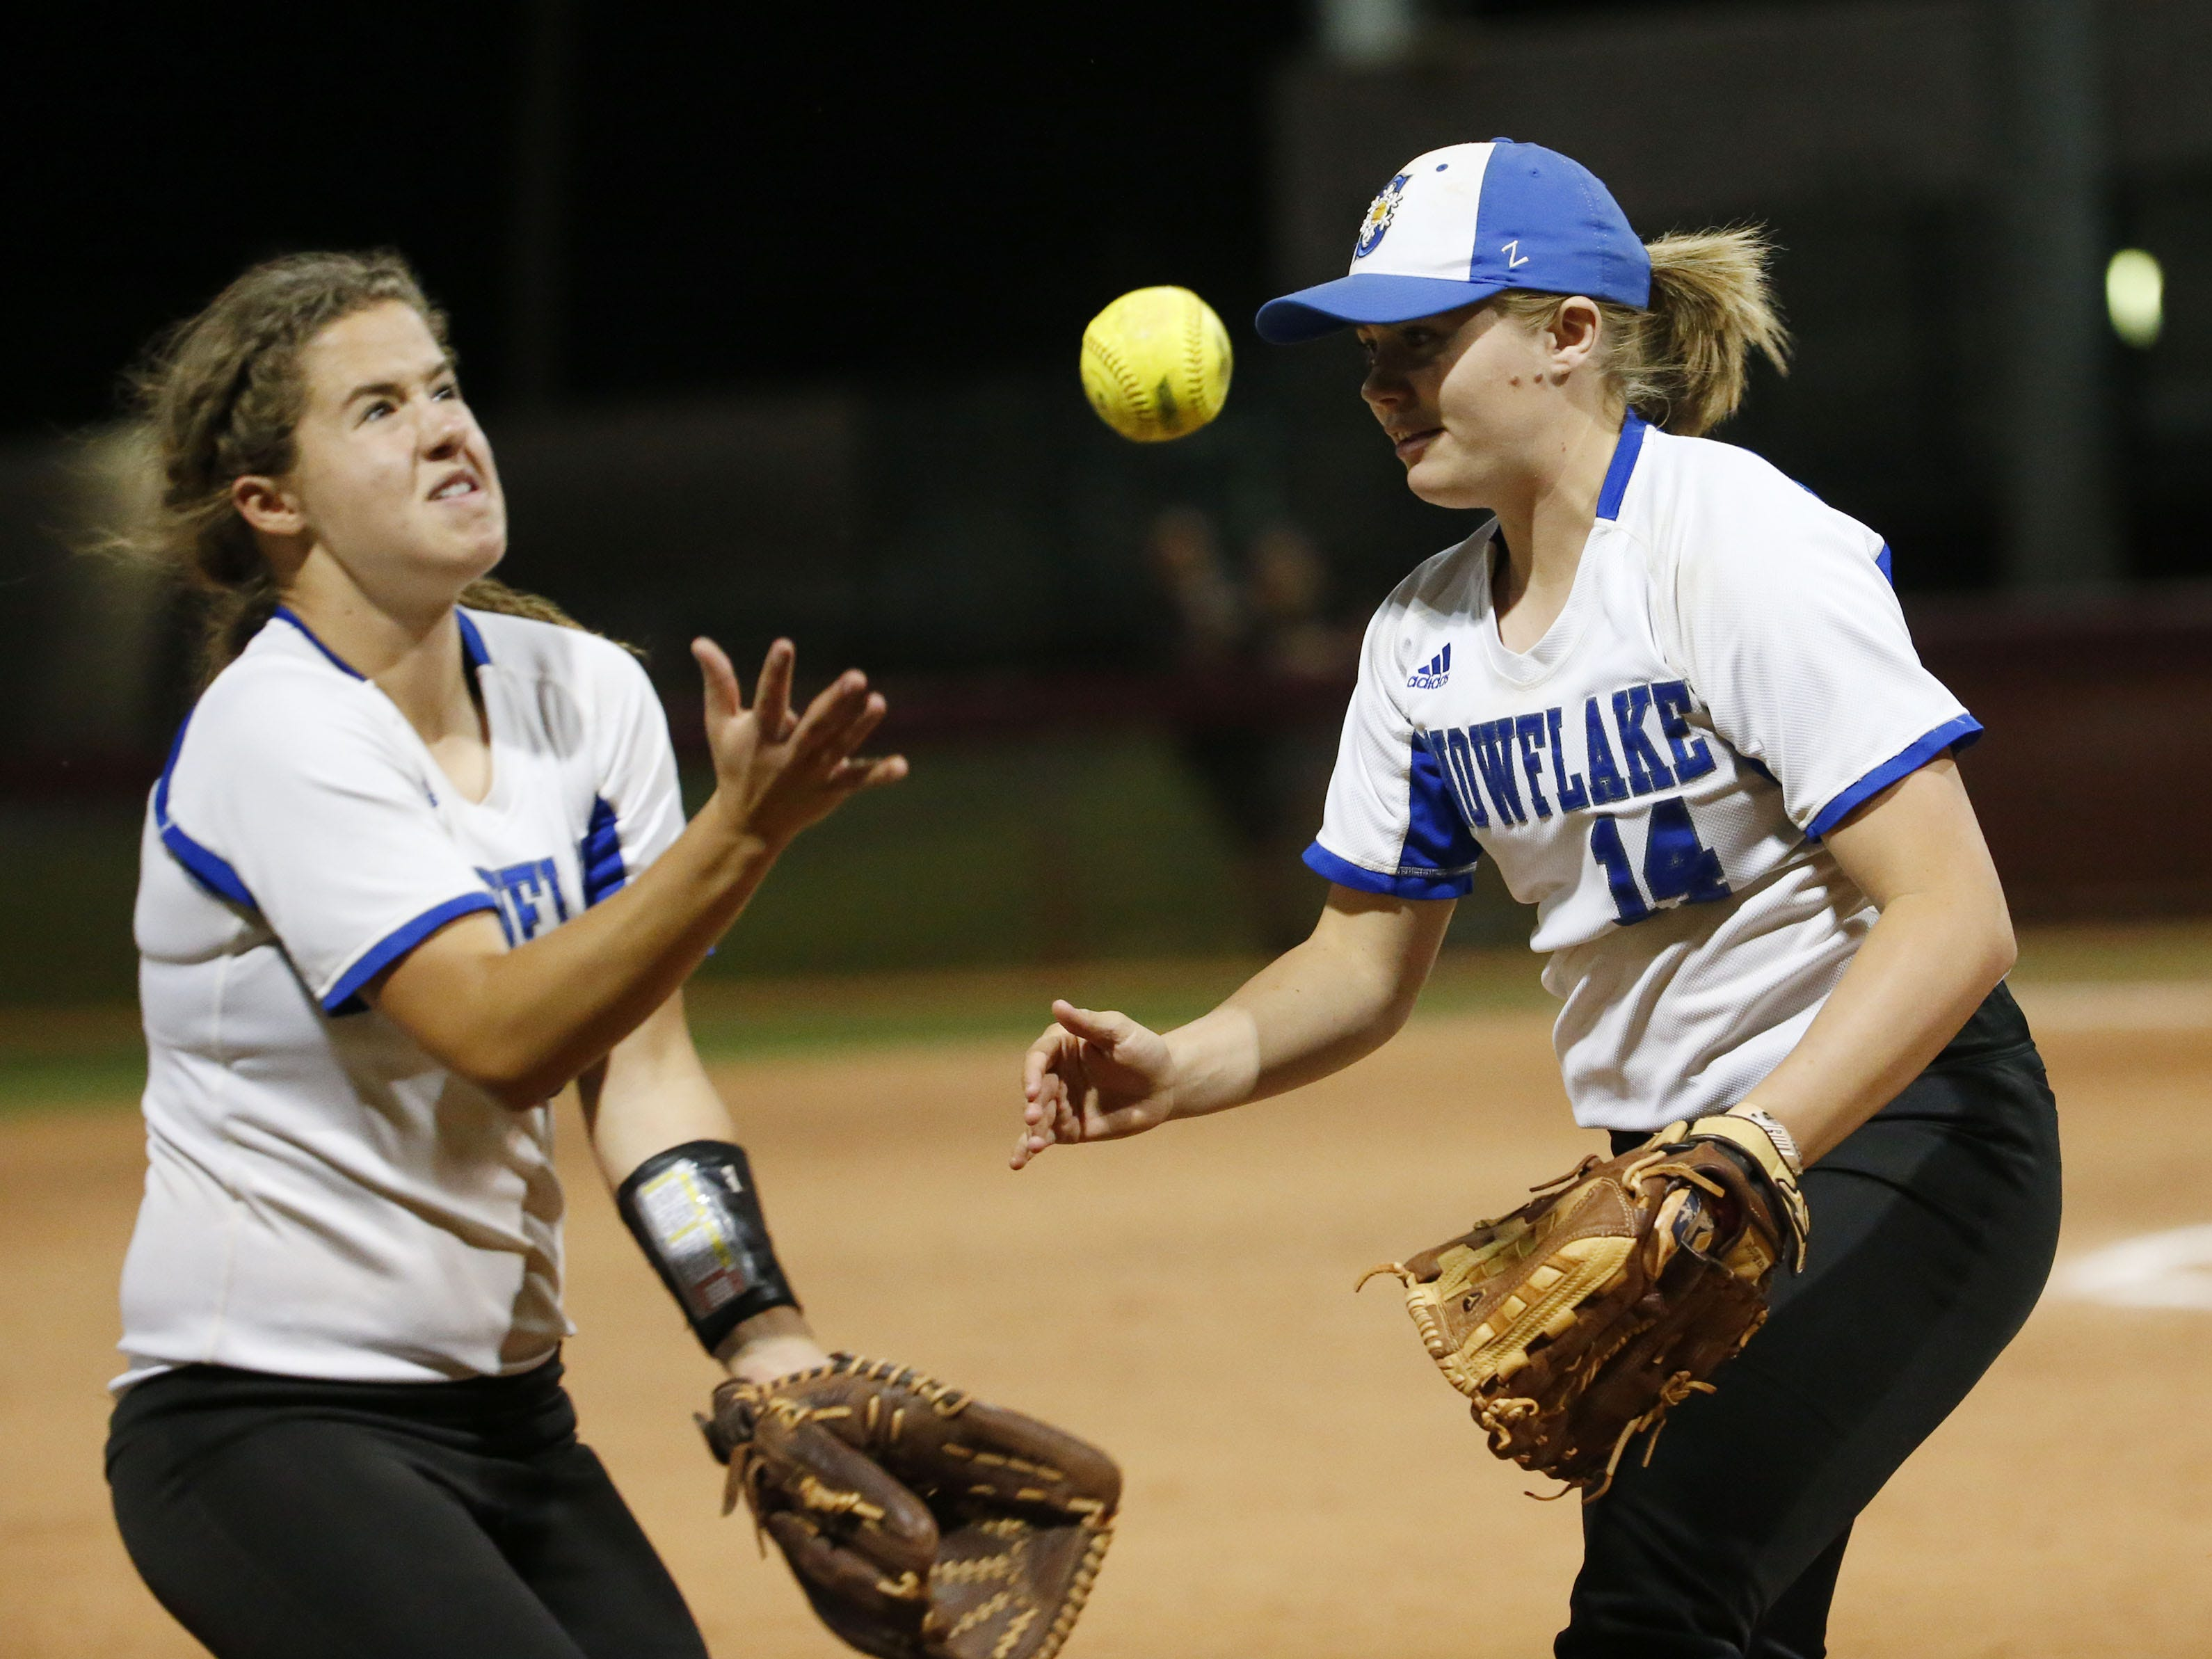 A pop foul by Sabino falls between Snowflake's Taryn Flake (3) and Hallie McCray (14) during the 3A softball state championship game in Tempe May 6, 2019.